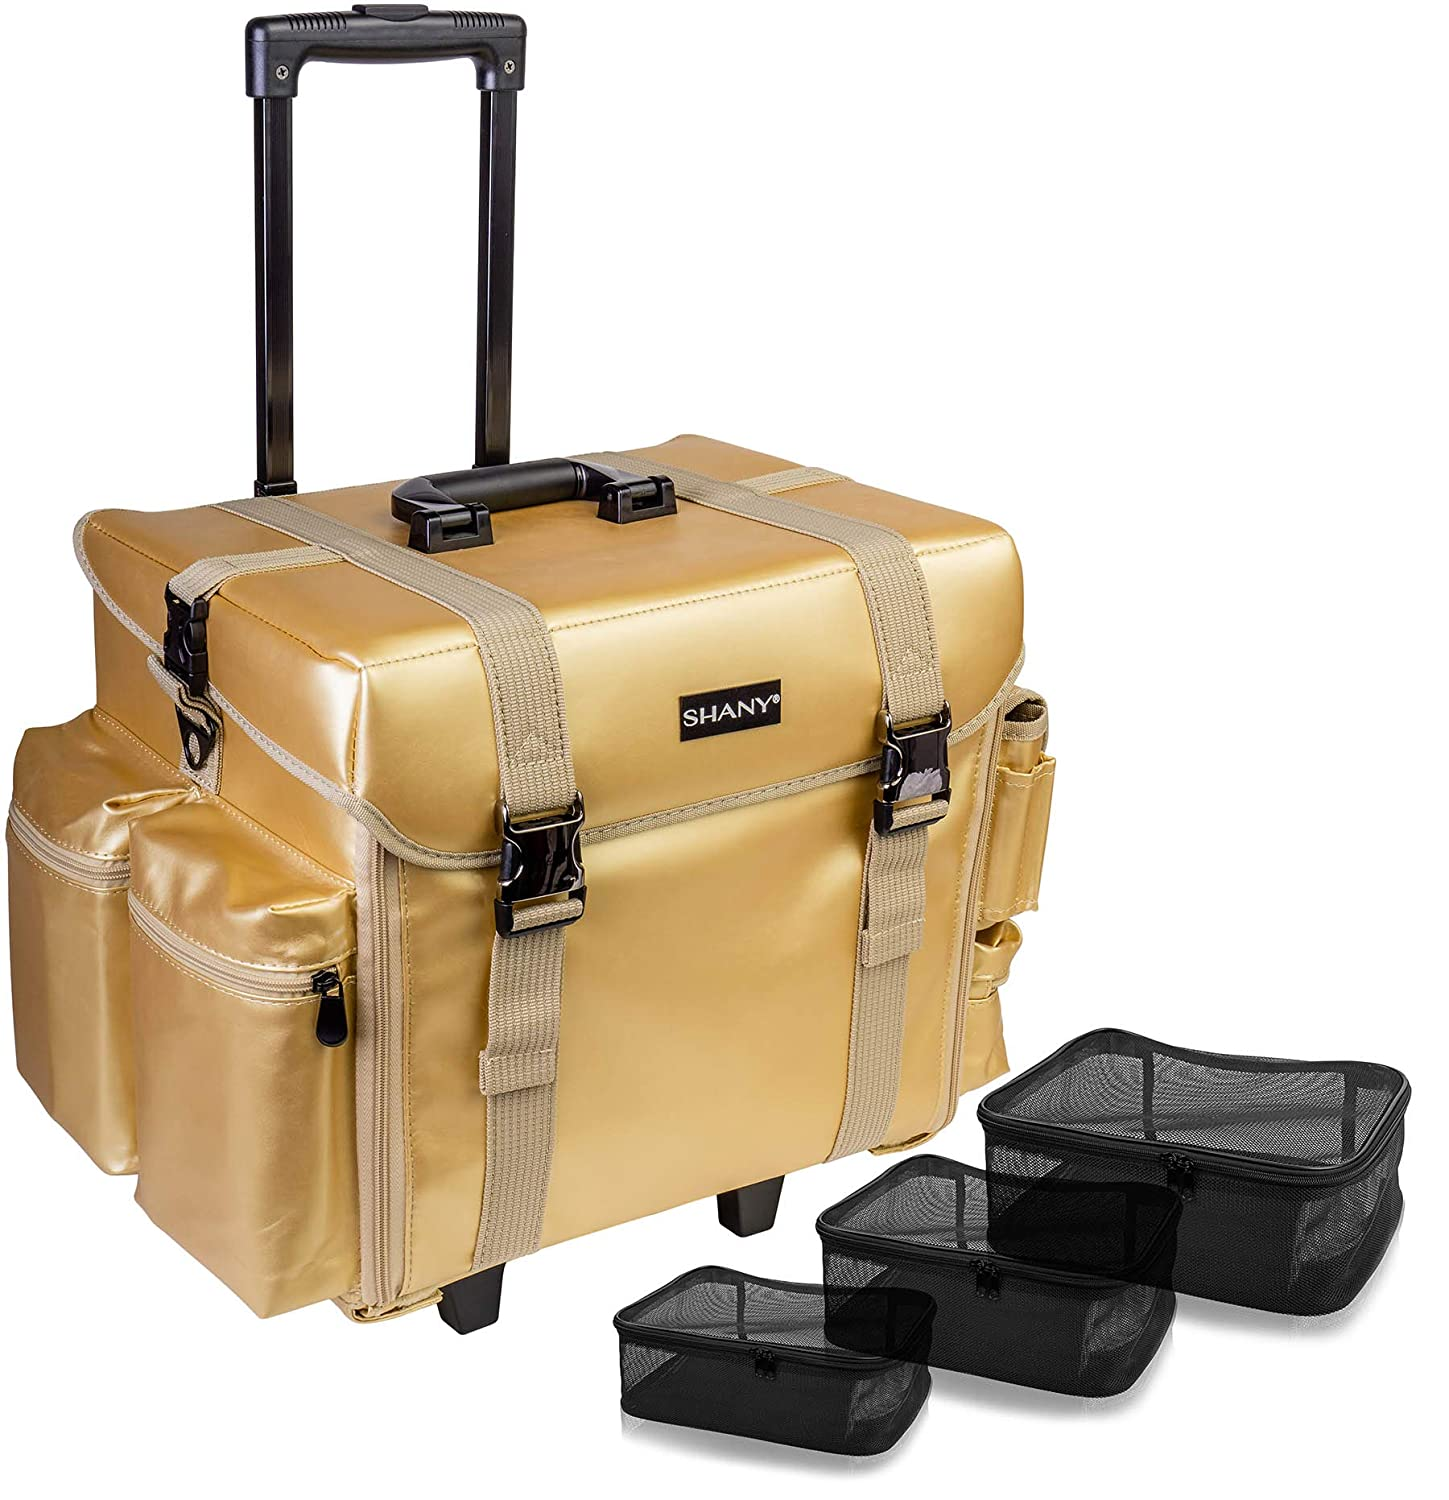 SHANY Makeup Artist Soft Rolling Trolley Cosmetic Case with Free Set of Mesh Bags - Gold Medal